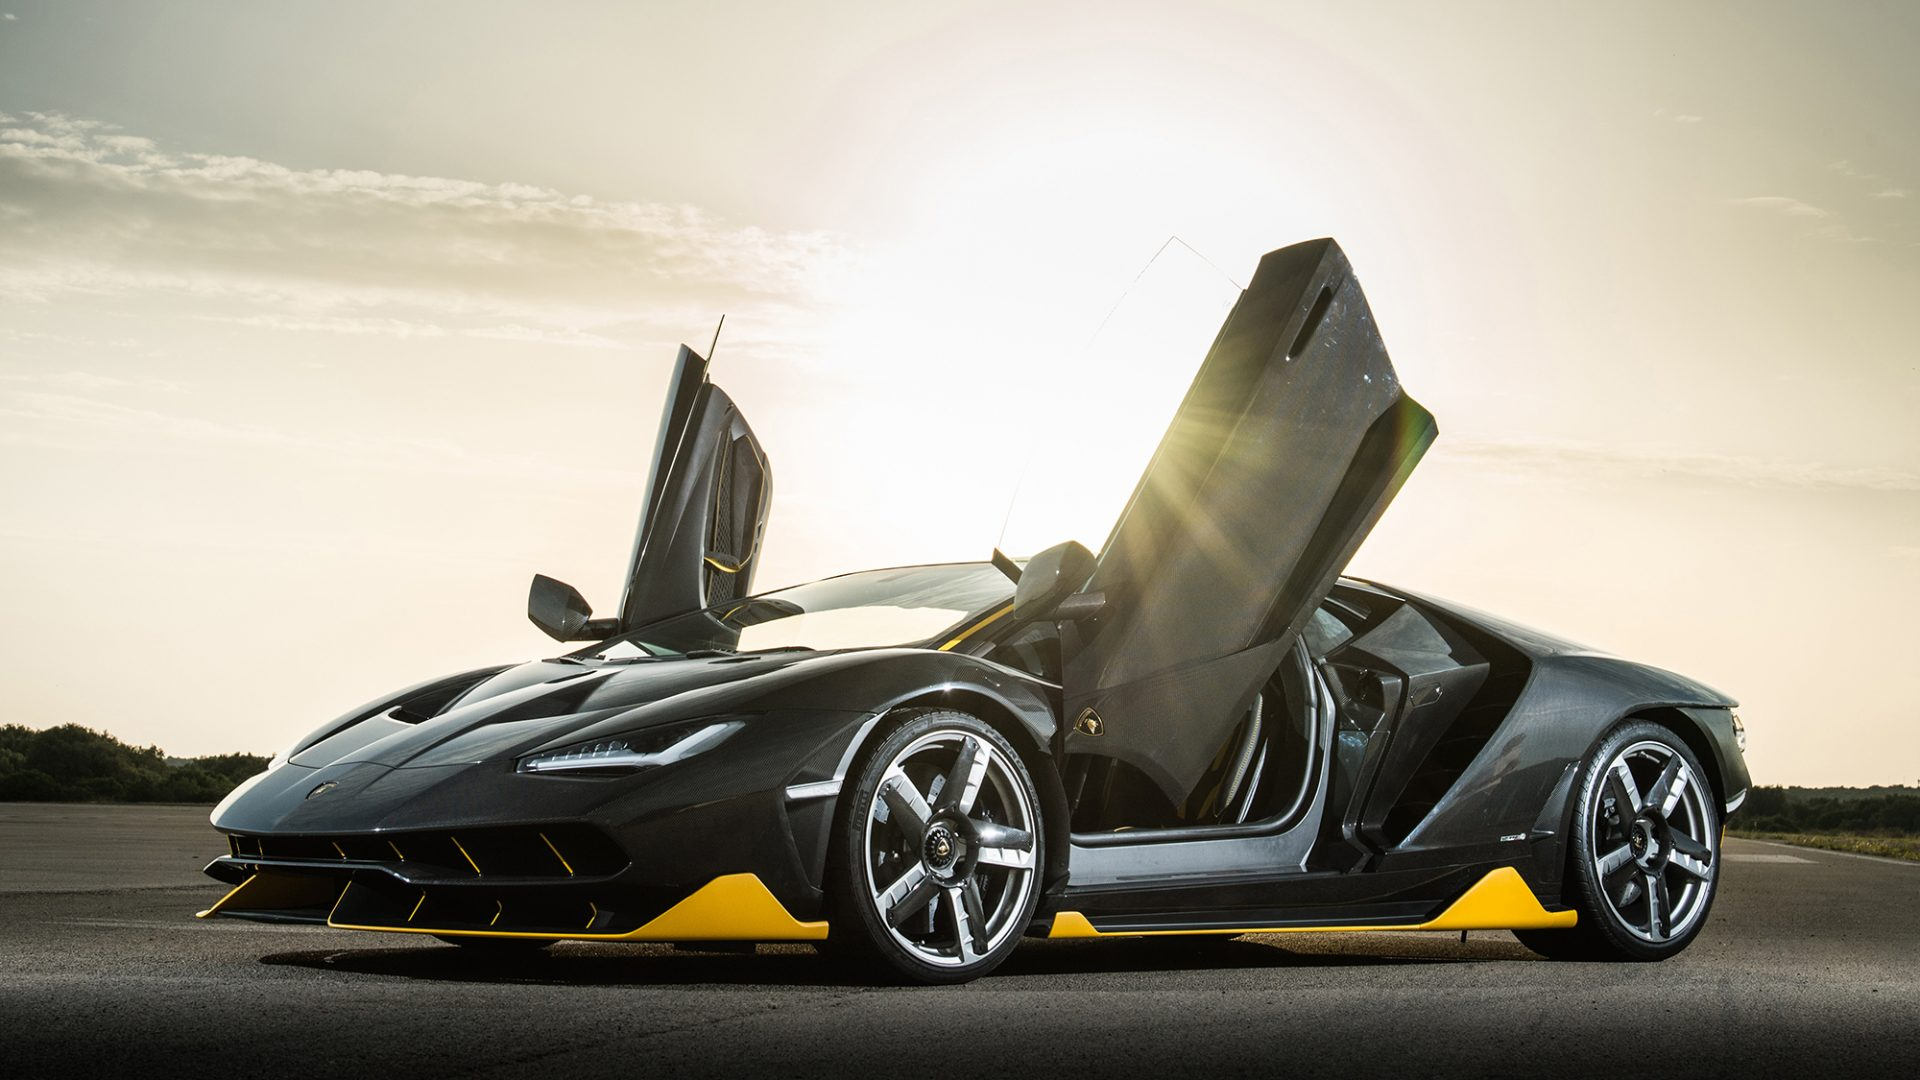 Road demons: 5 fastest naturally-aspirated V12 road cars